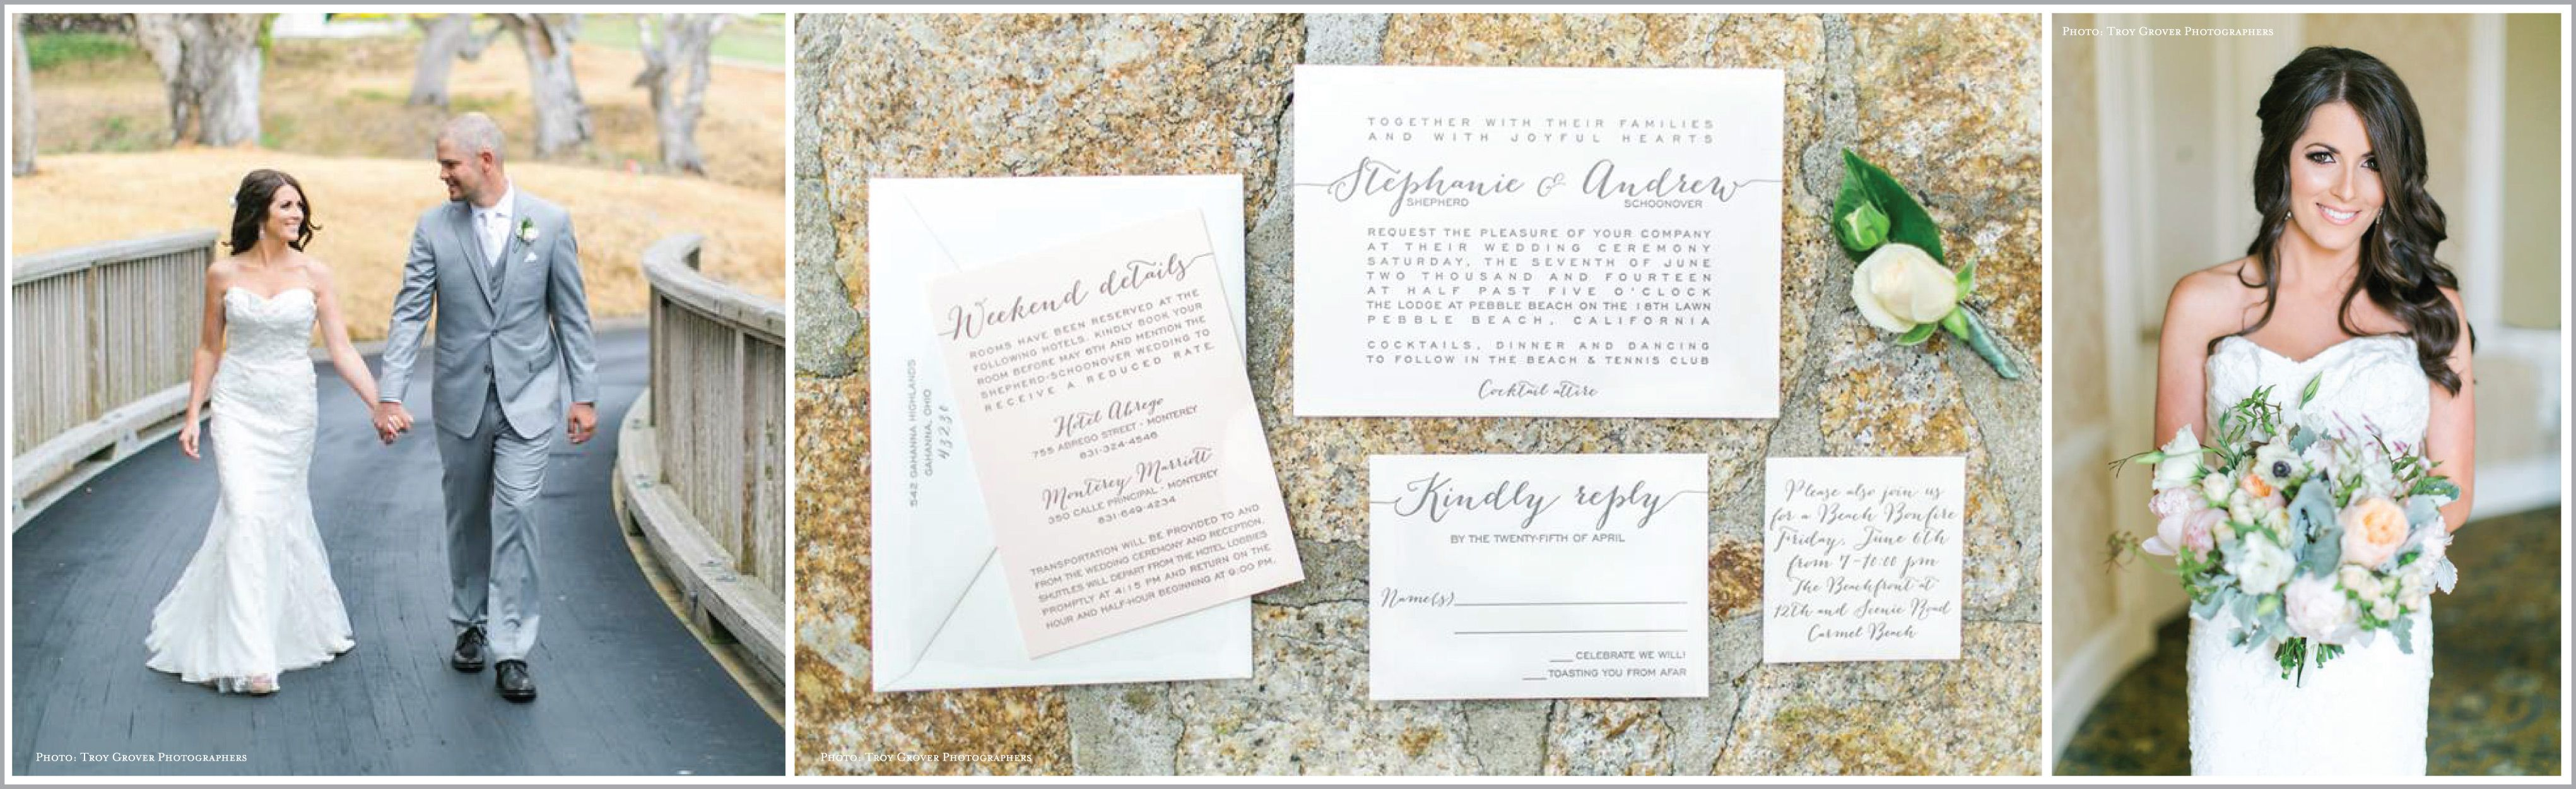 Stephanie And Andrew Photos Of The By Troy Grover Photographers Invitation  By On Paper   Columbus